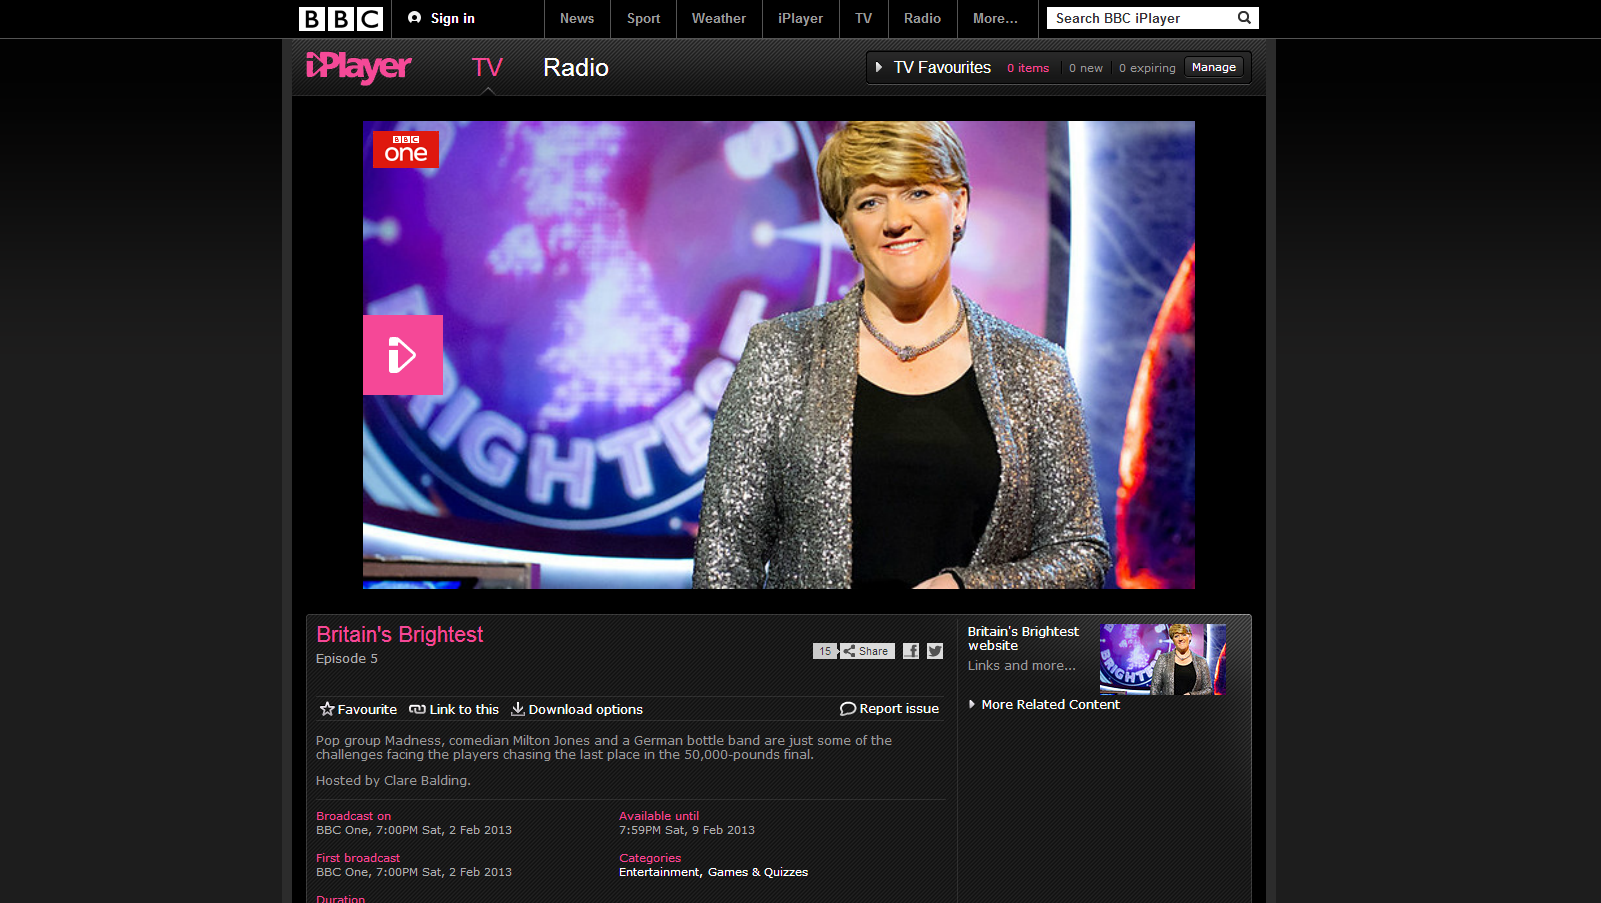 BBC-BritainsBrightest